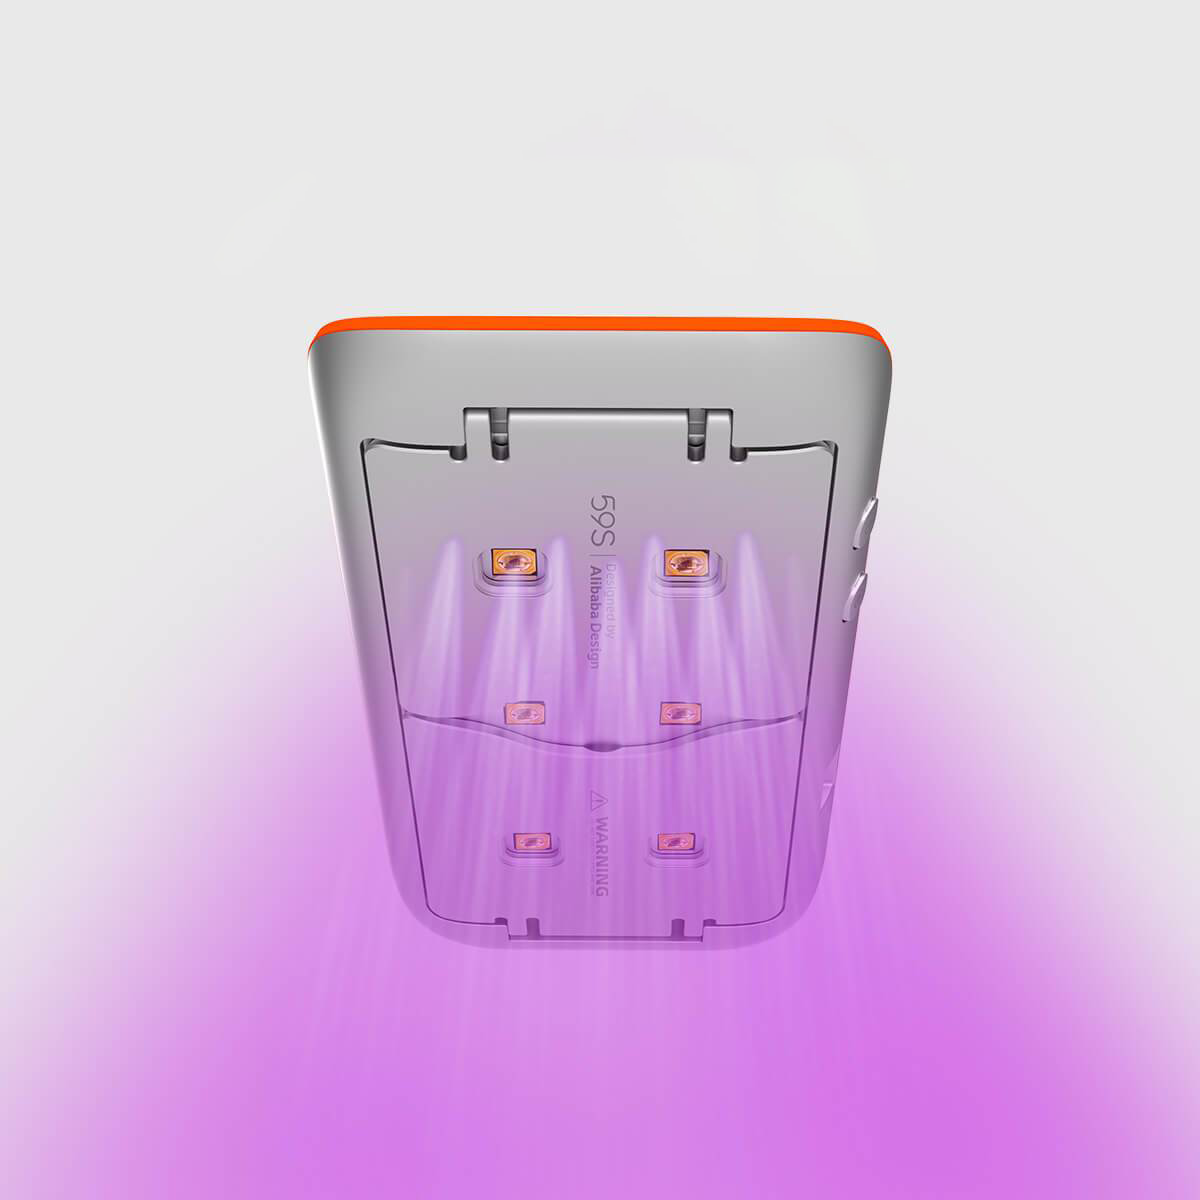 59S UV LED Portable Sterilizer X1 (Silver With Orange) UV light rays